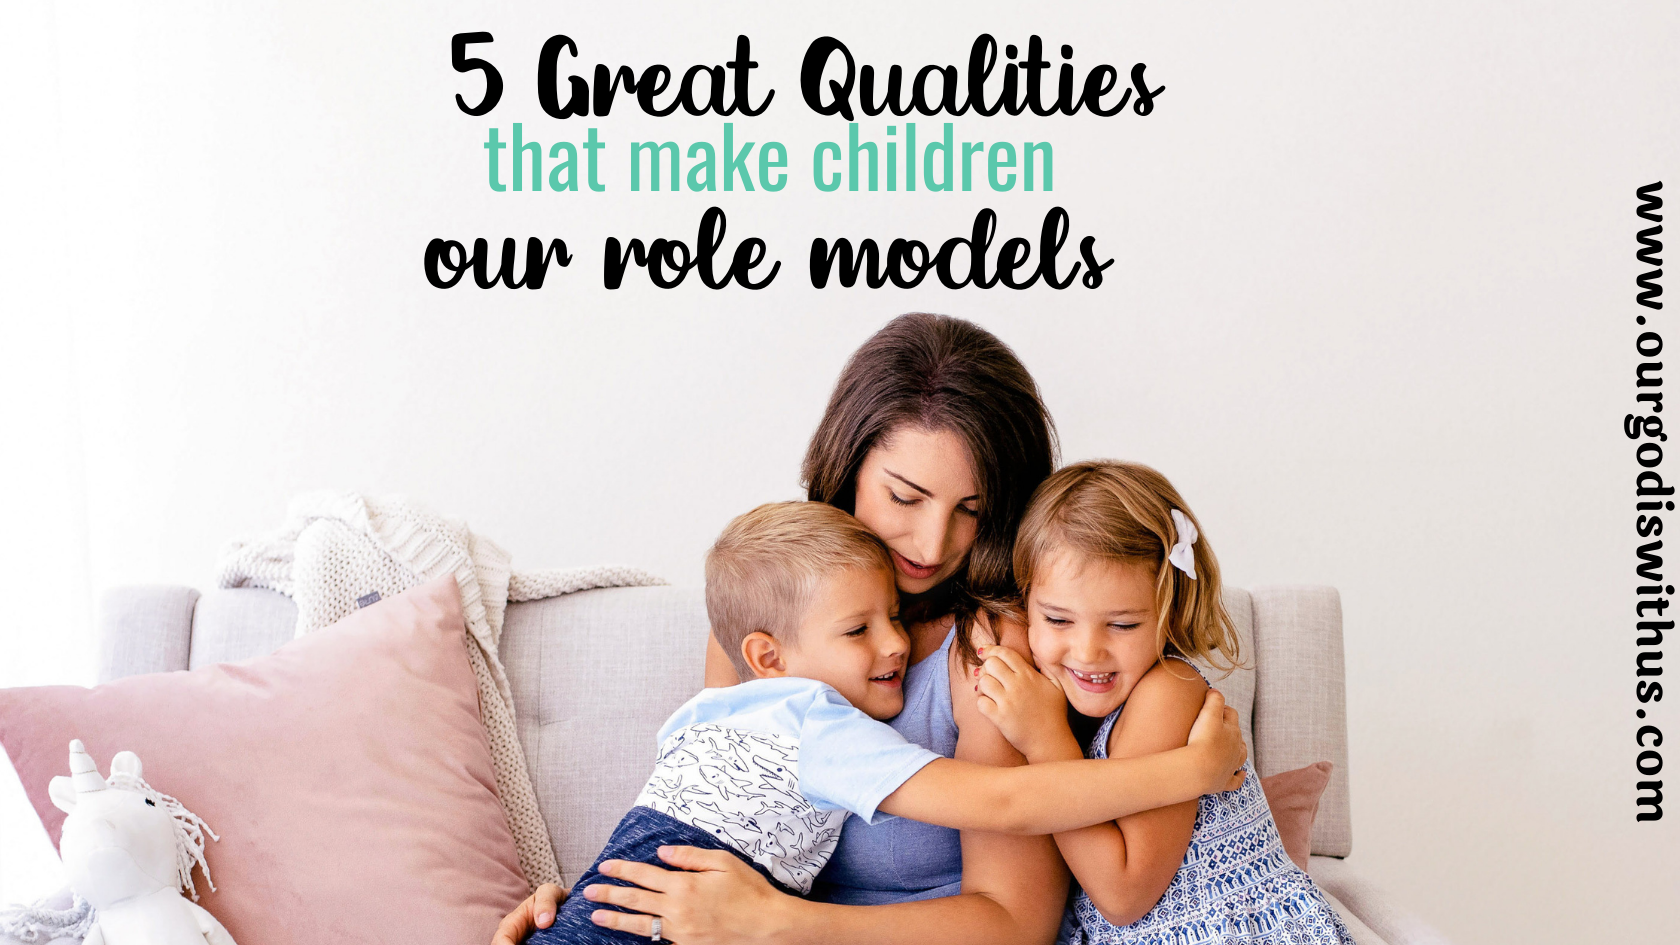 5 Great qualities that make children our role models